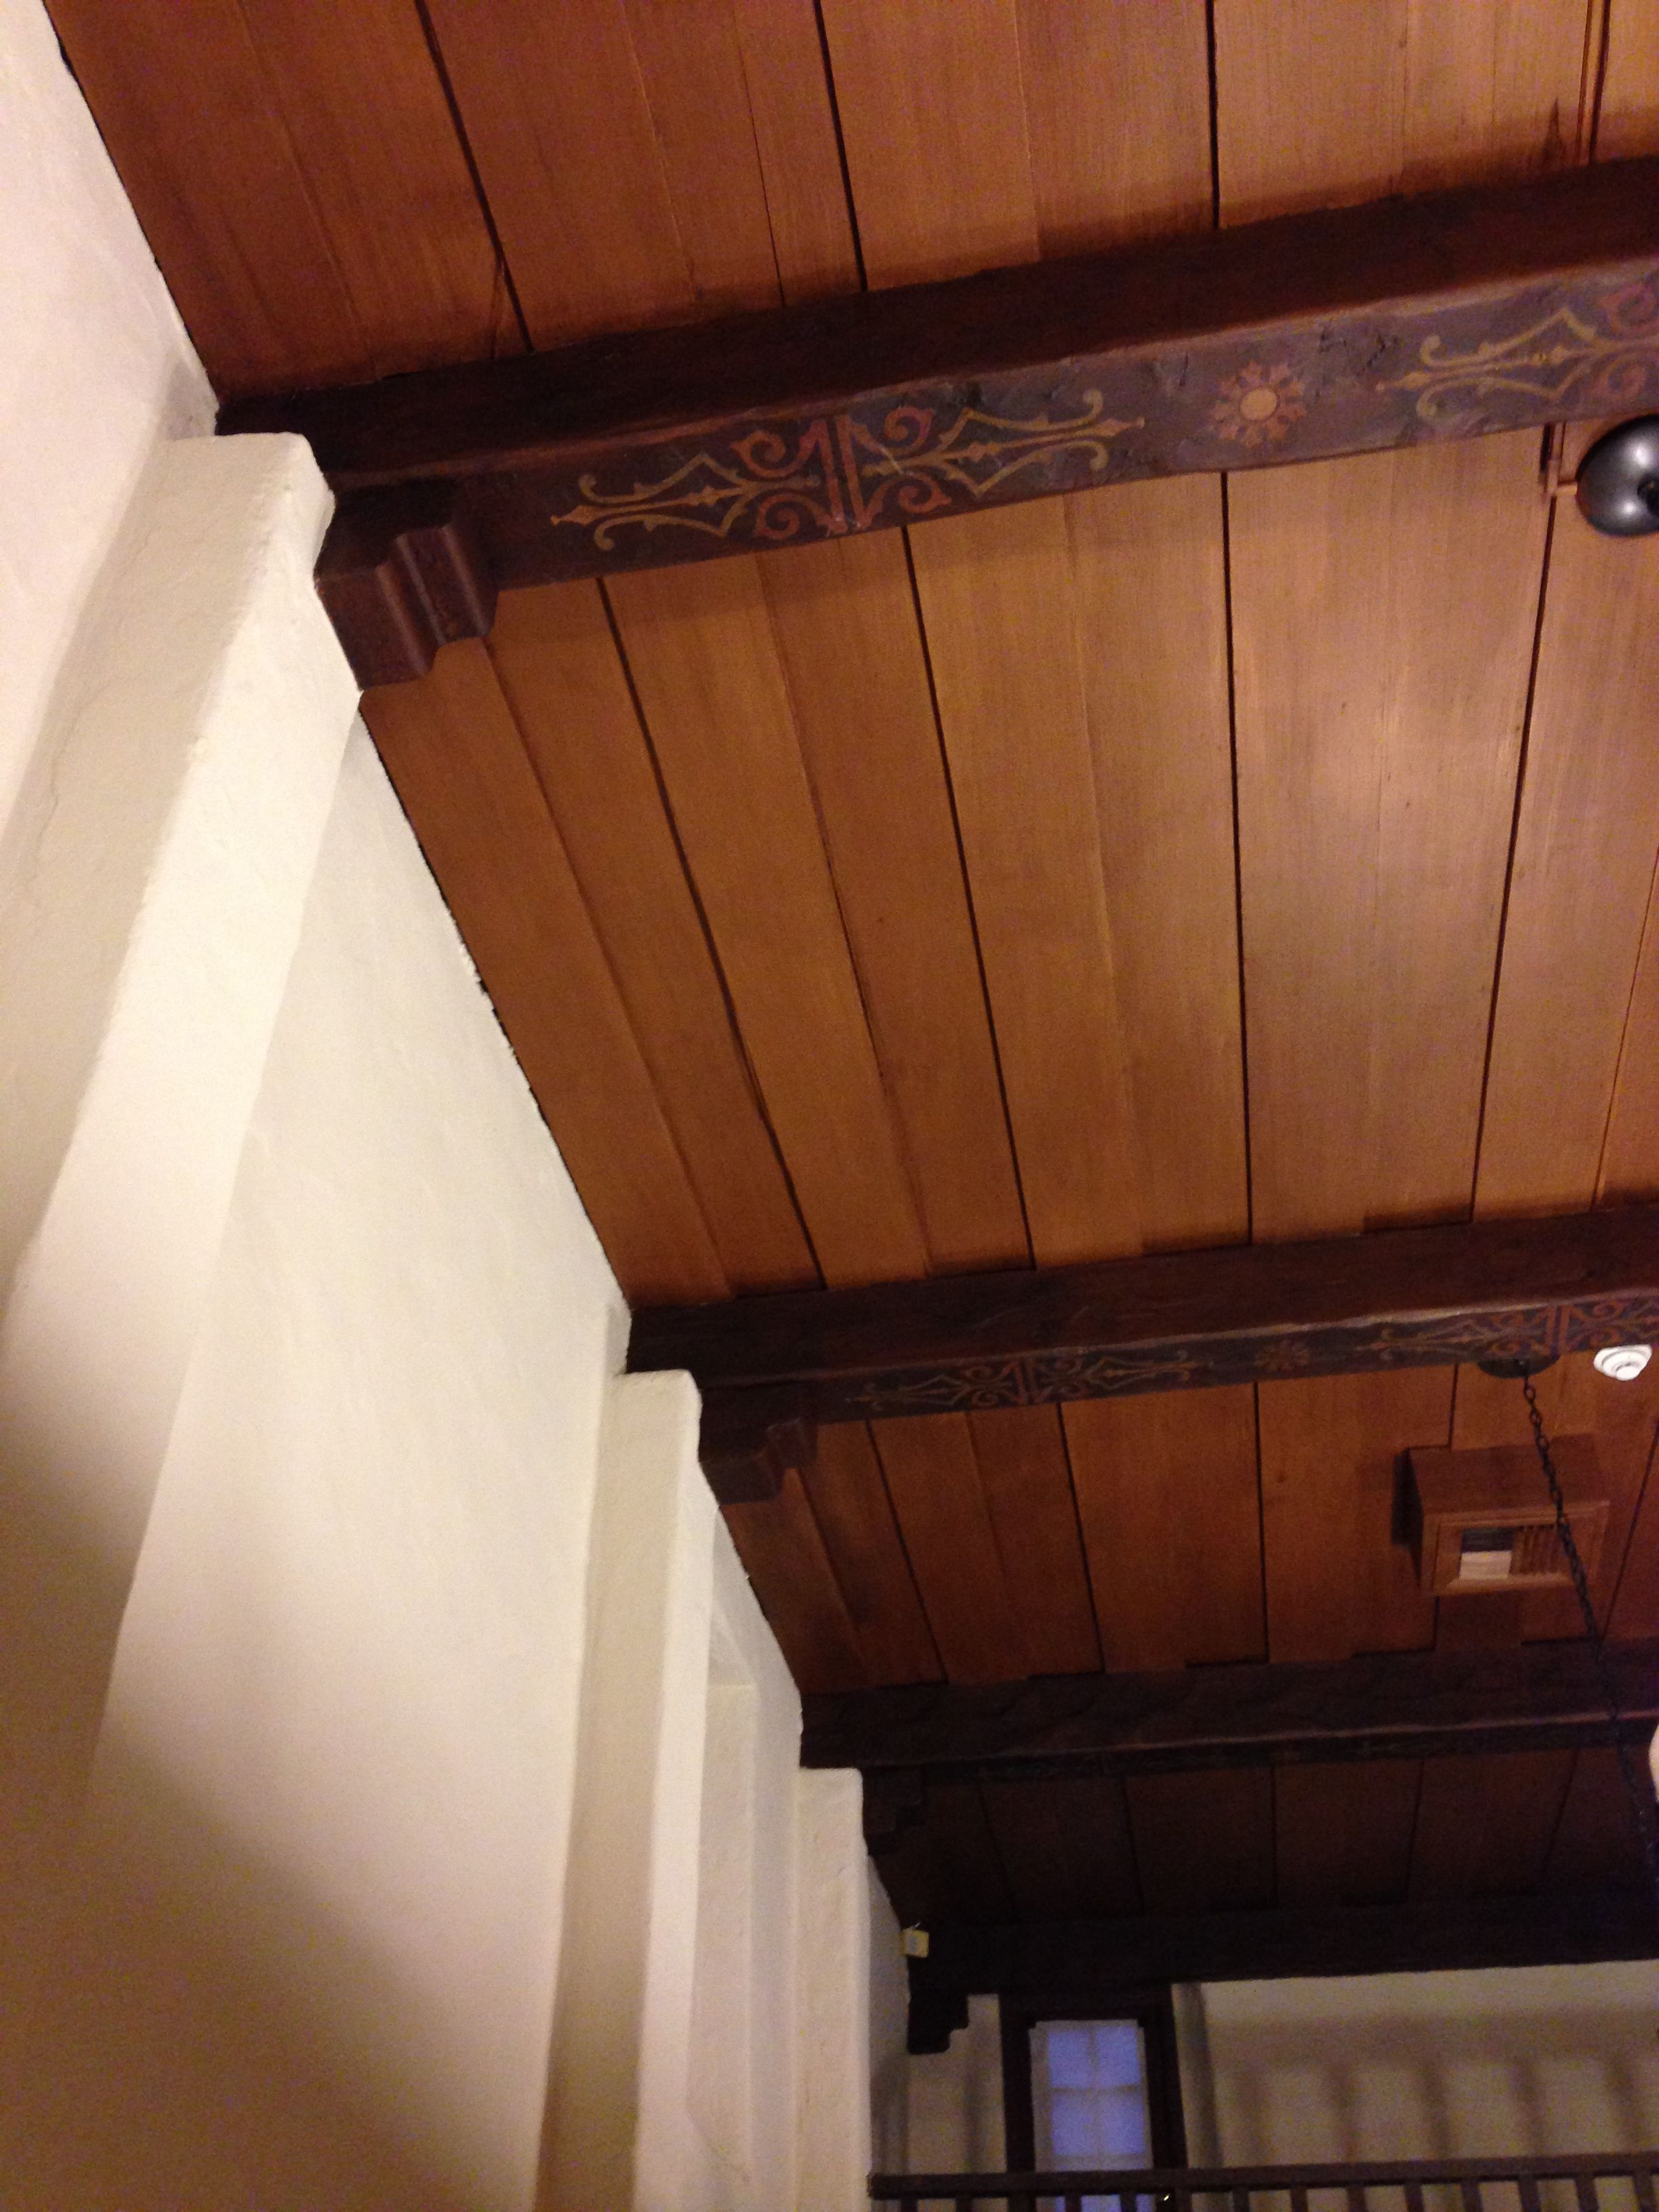 Painted Wood Ceilings Painted Wood Ceiling With Stained And Stenciled Wood Beams Using